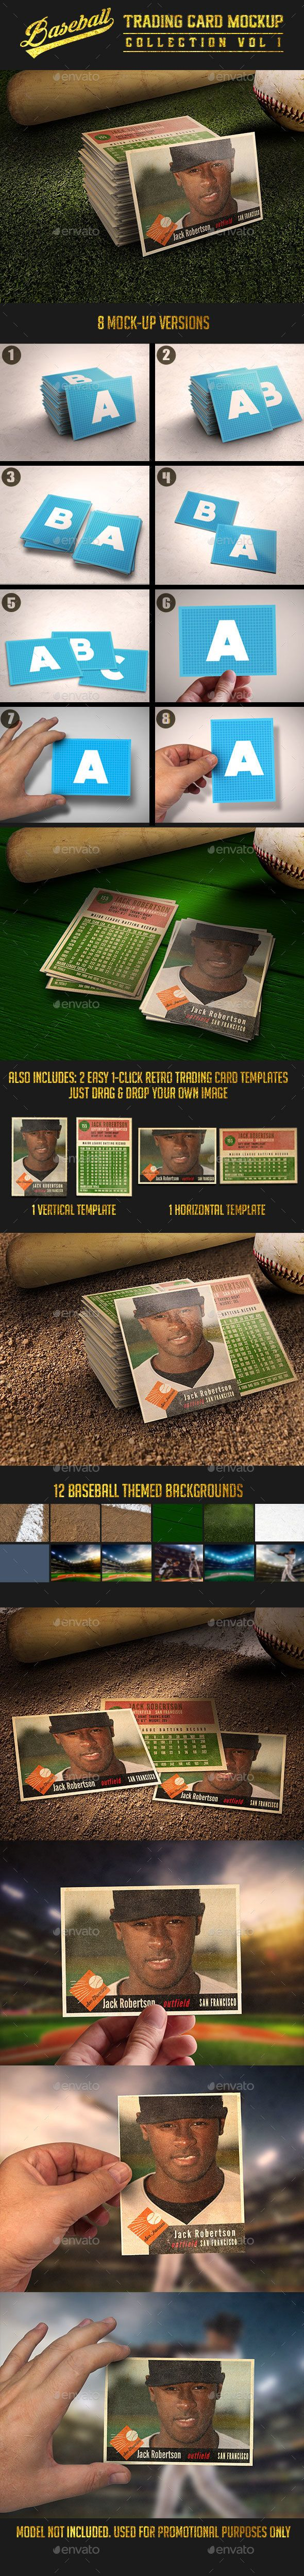 Baseball Trading Card MockUp Collection V  Mock Up Psd